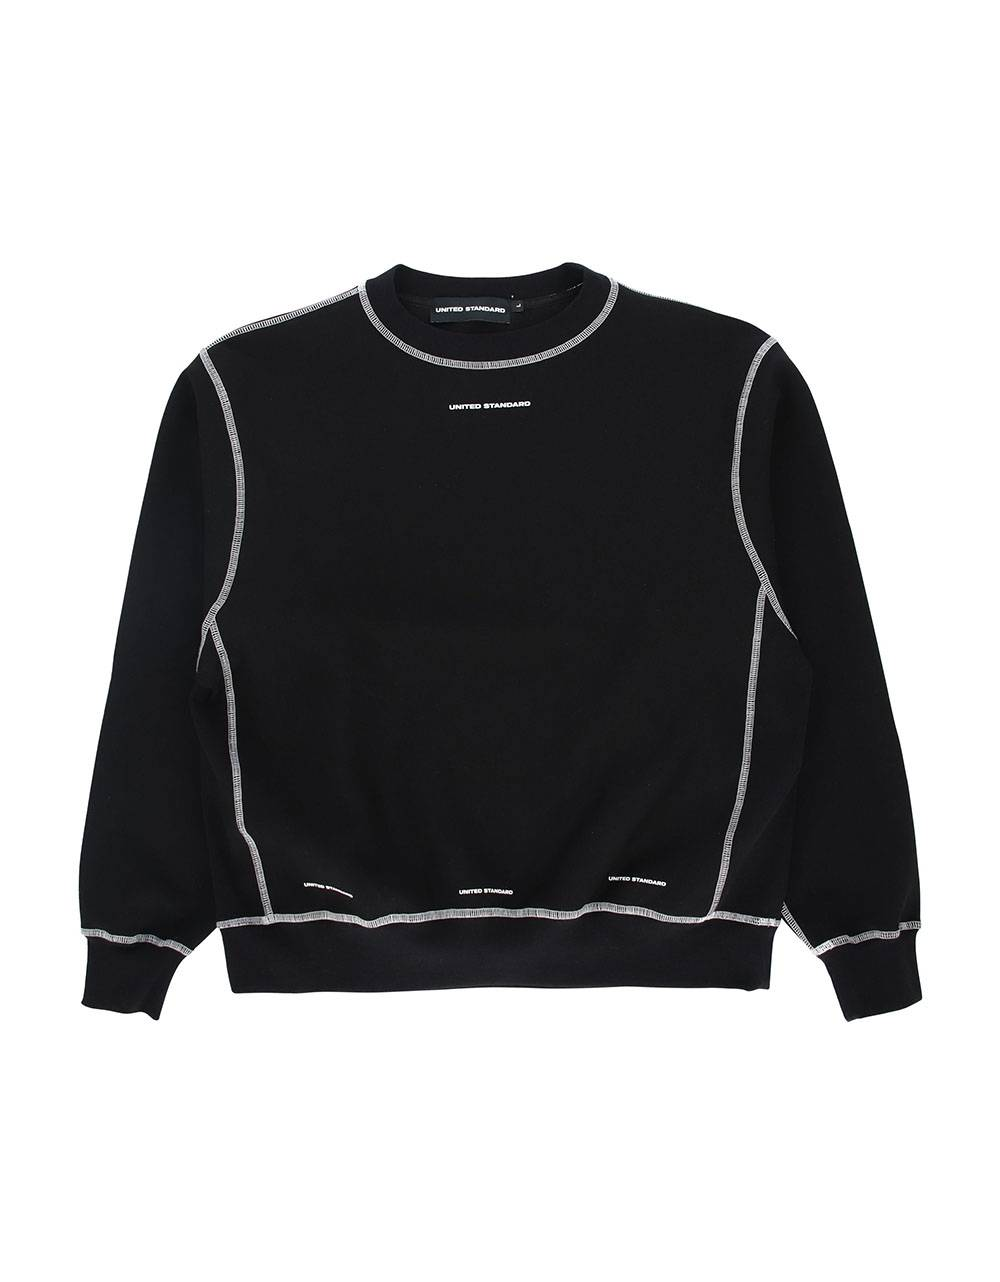 United Standard Logo crewneck sweater - black United Standard Sweater 135,25 €